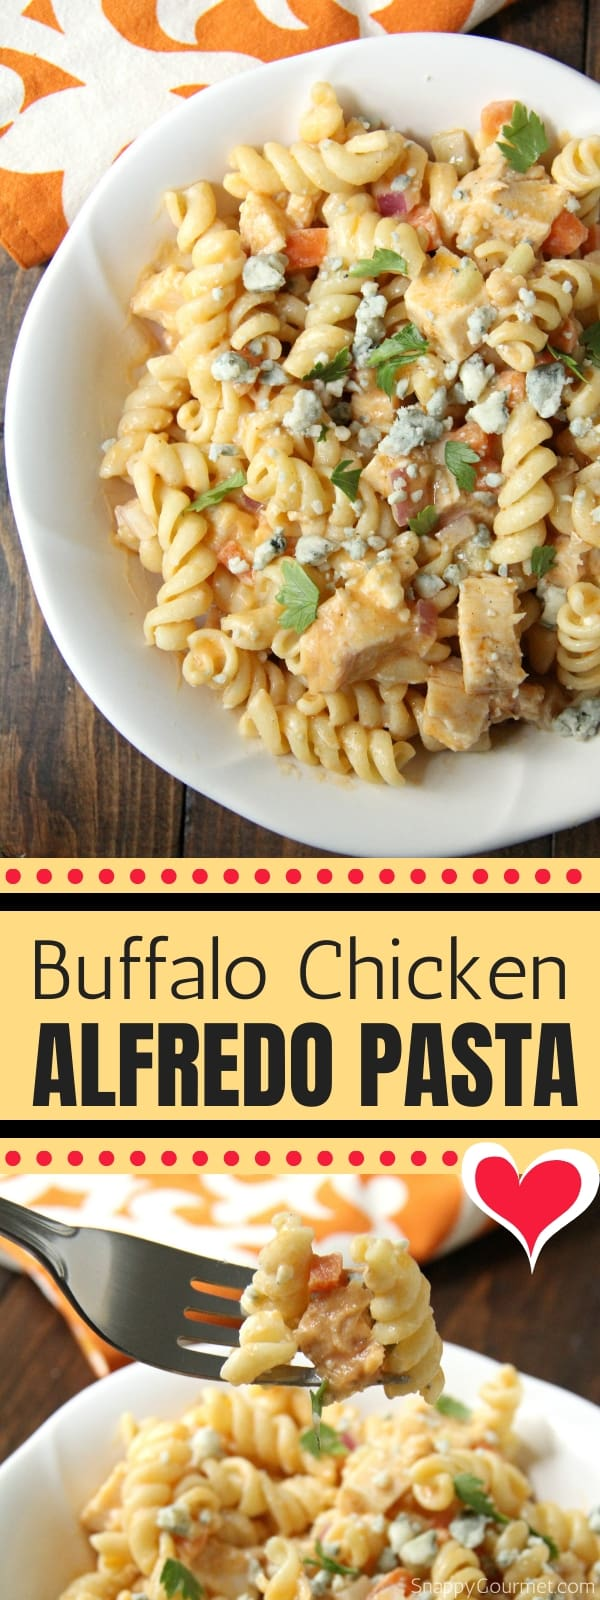 Buffalo Chicken Alfredo Pasta collage